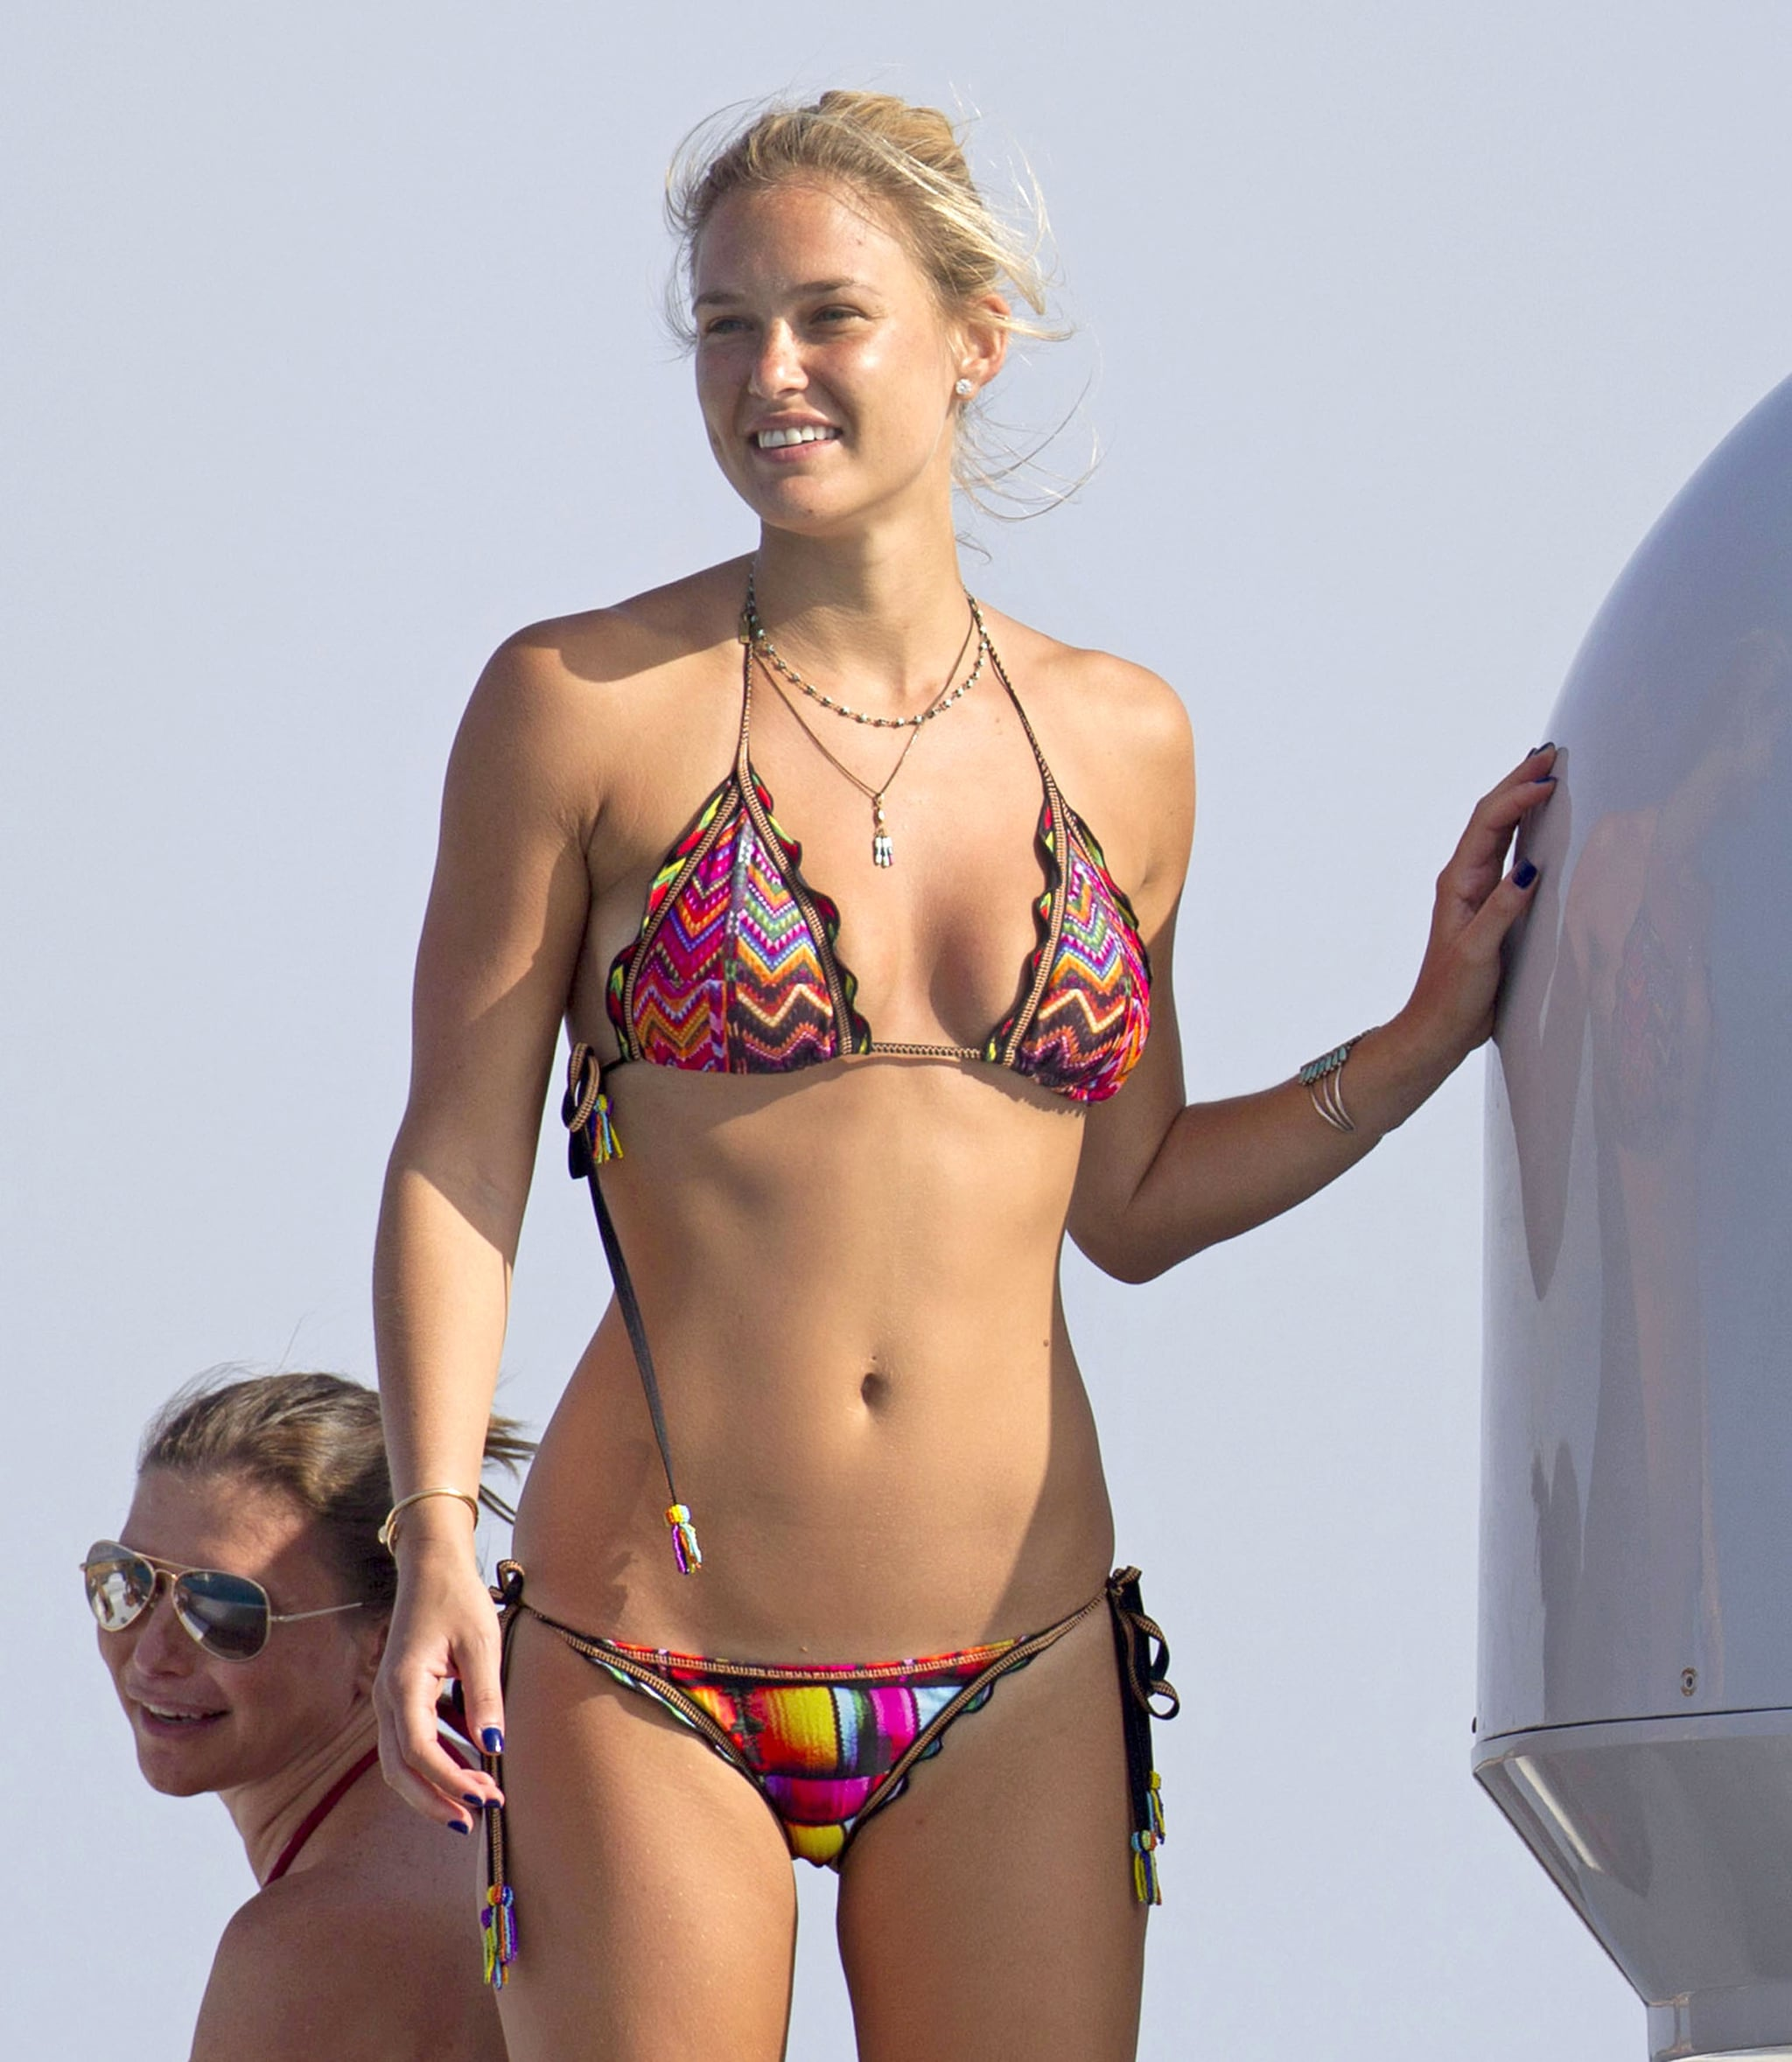 Bar Refaeli Bikini Bodies  Pic 27 of 35